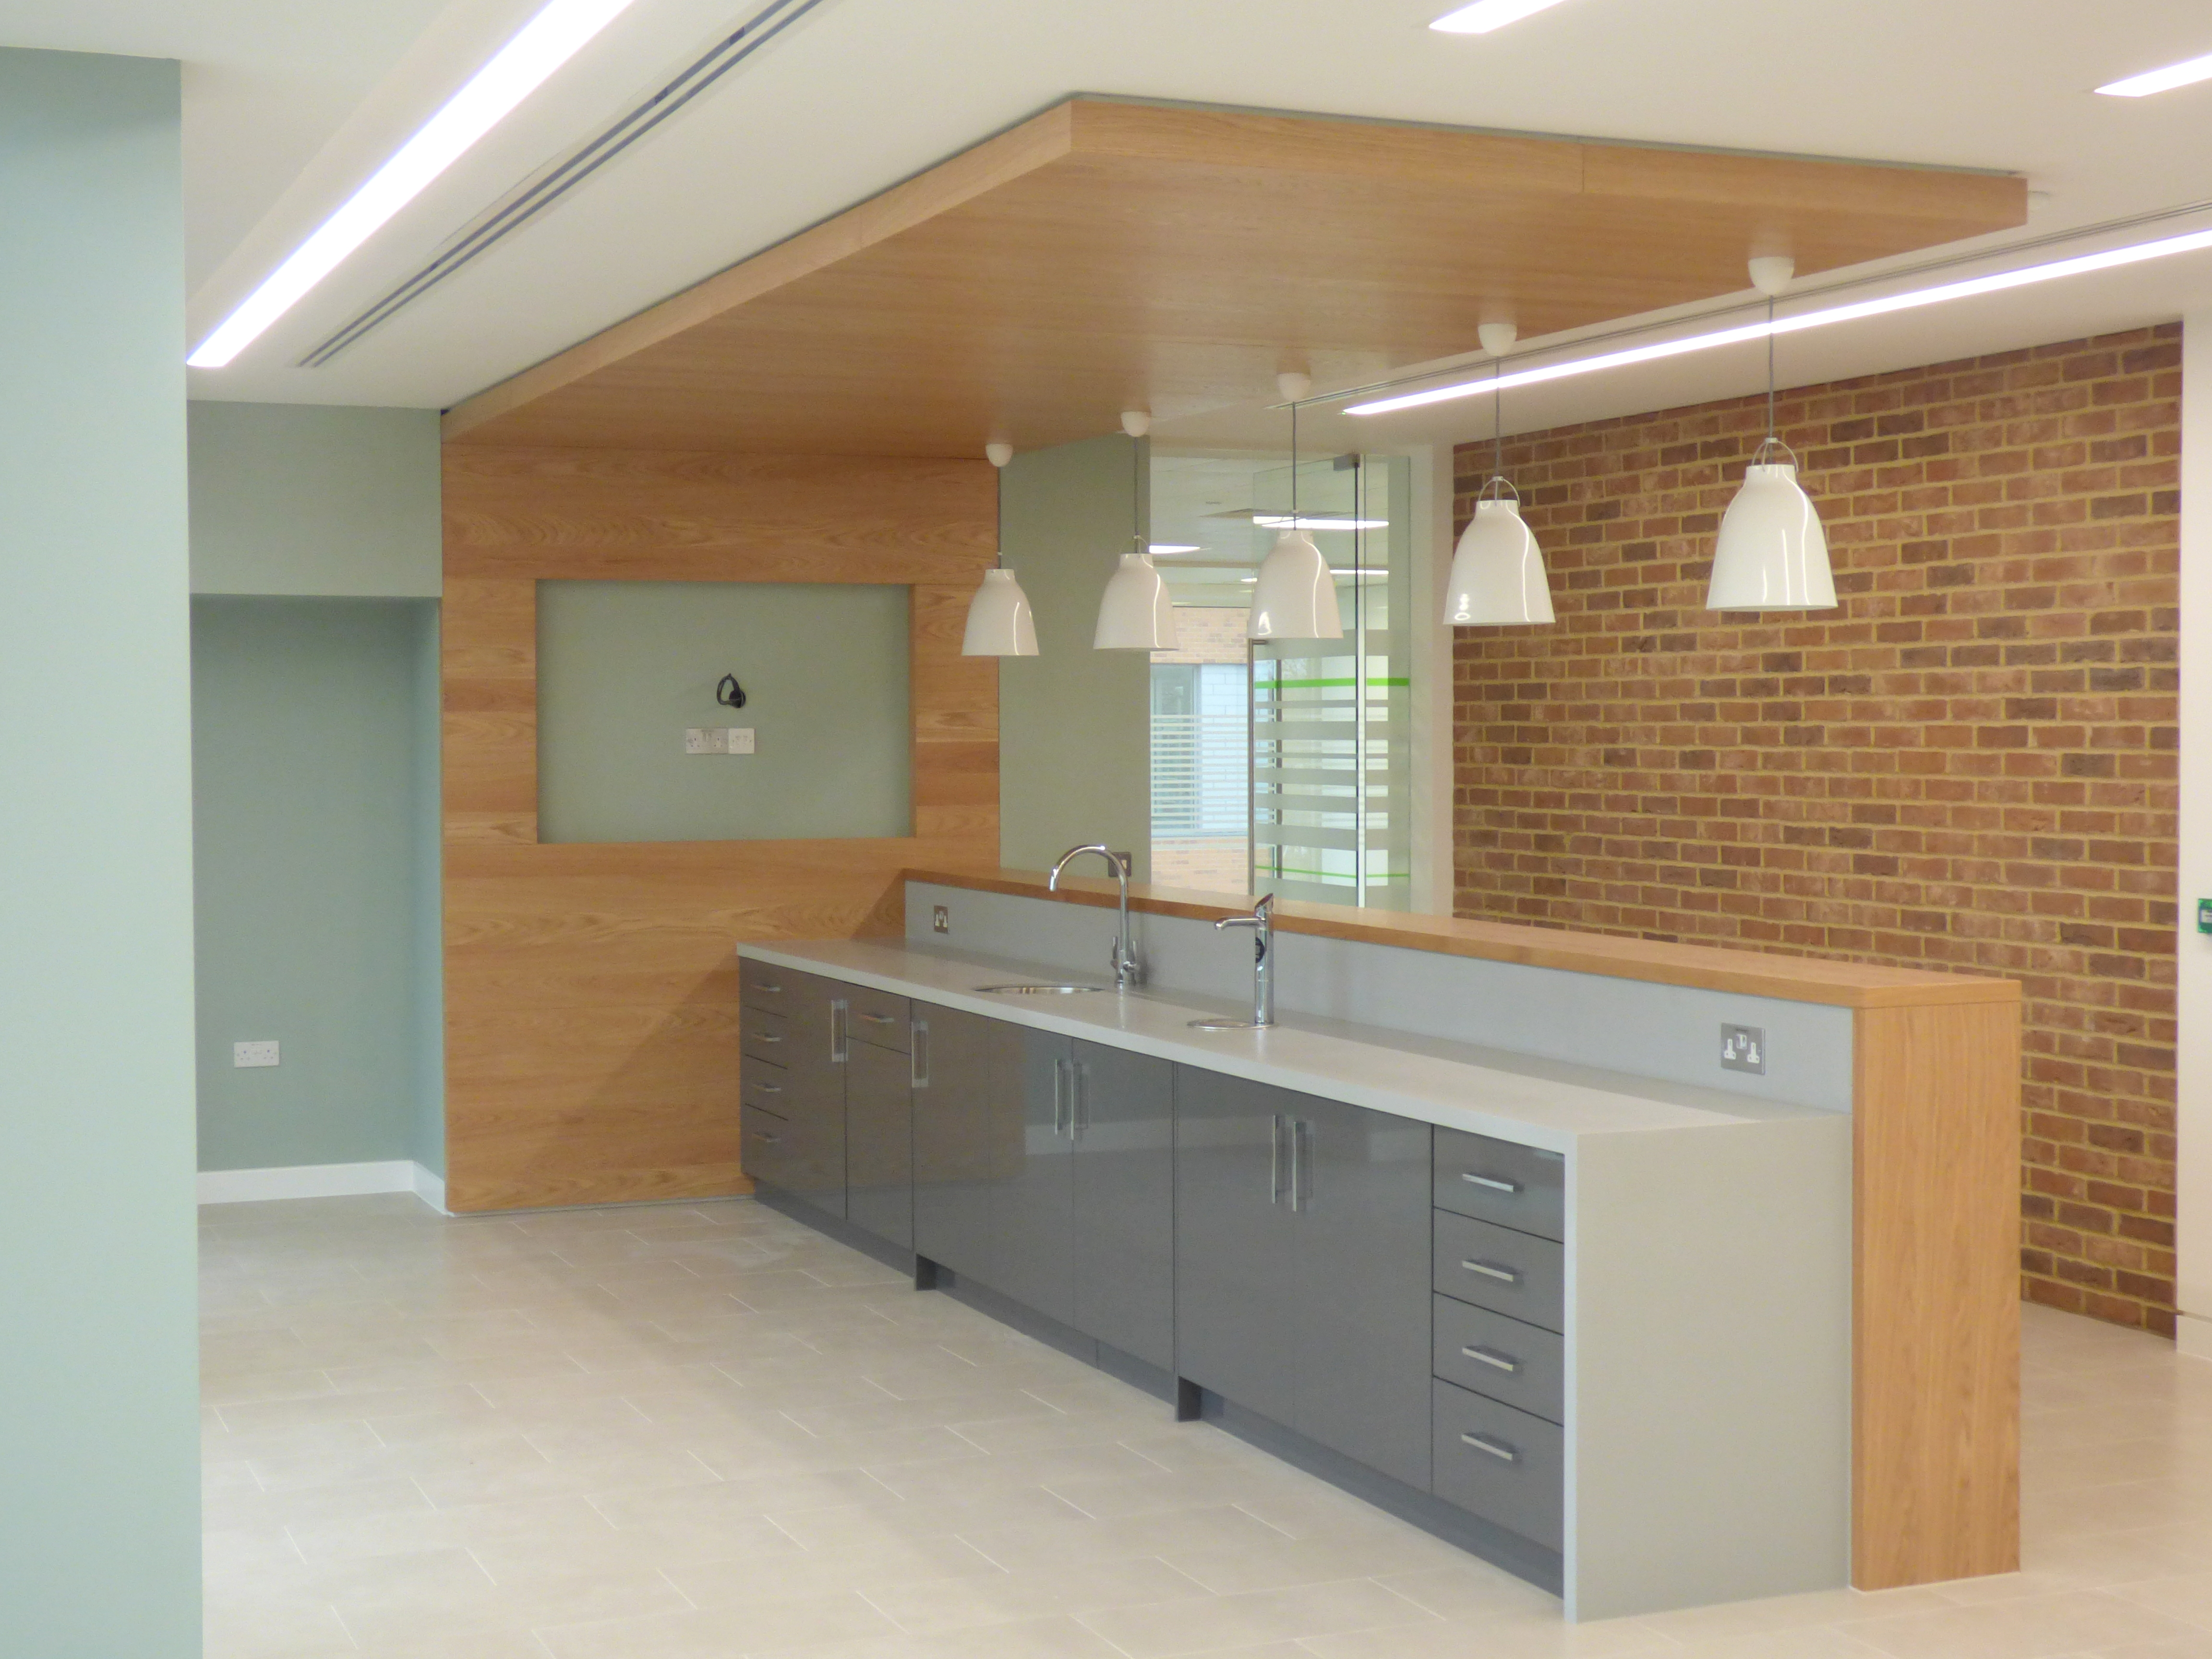 Rawlinson and Hunter bespoke office fit out furniture